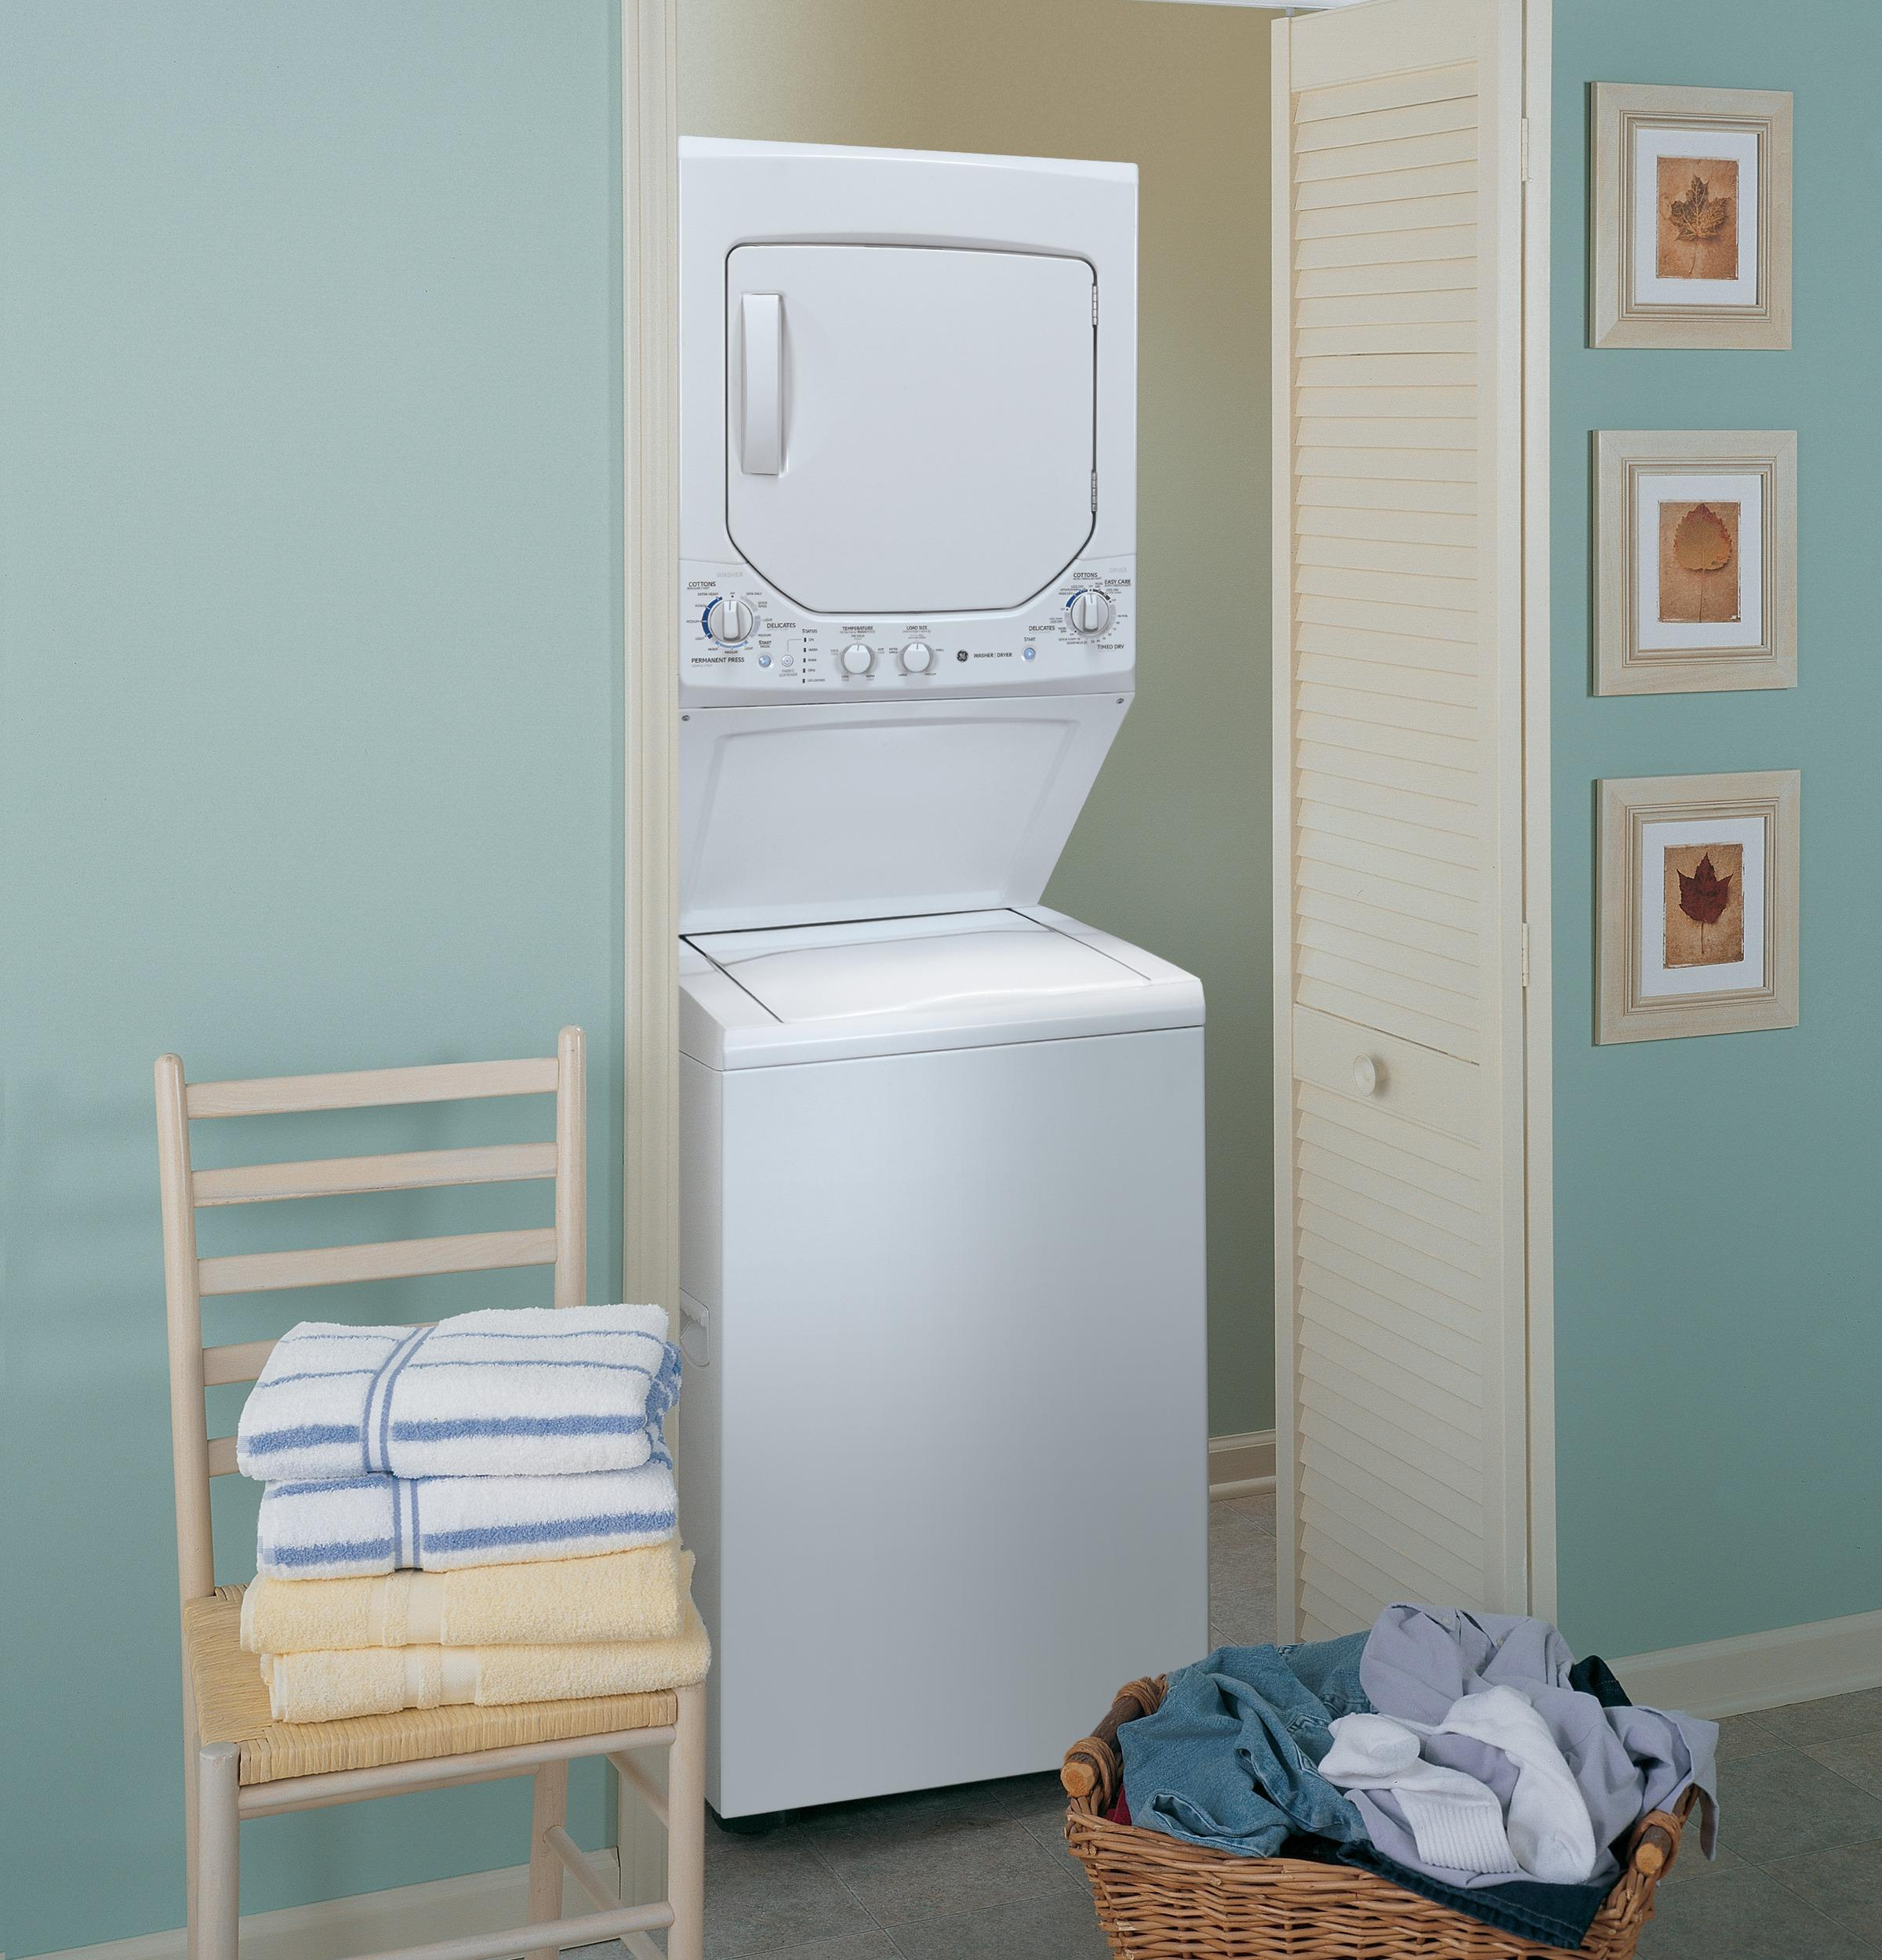 GE Unitized Spacemaker(R) 2.0 DOE cu. ft. Washer and 4.4 cu. ft. Electric Dryer